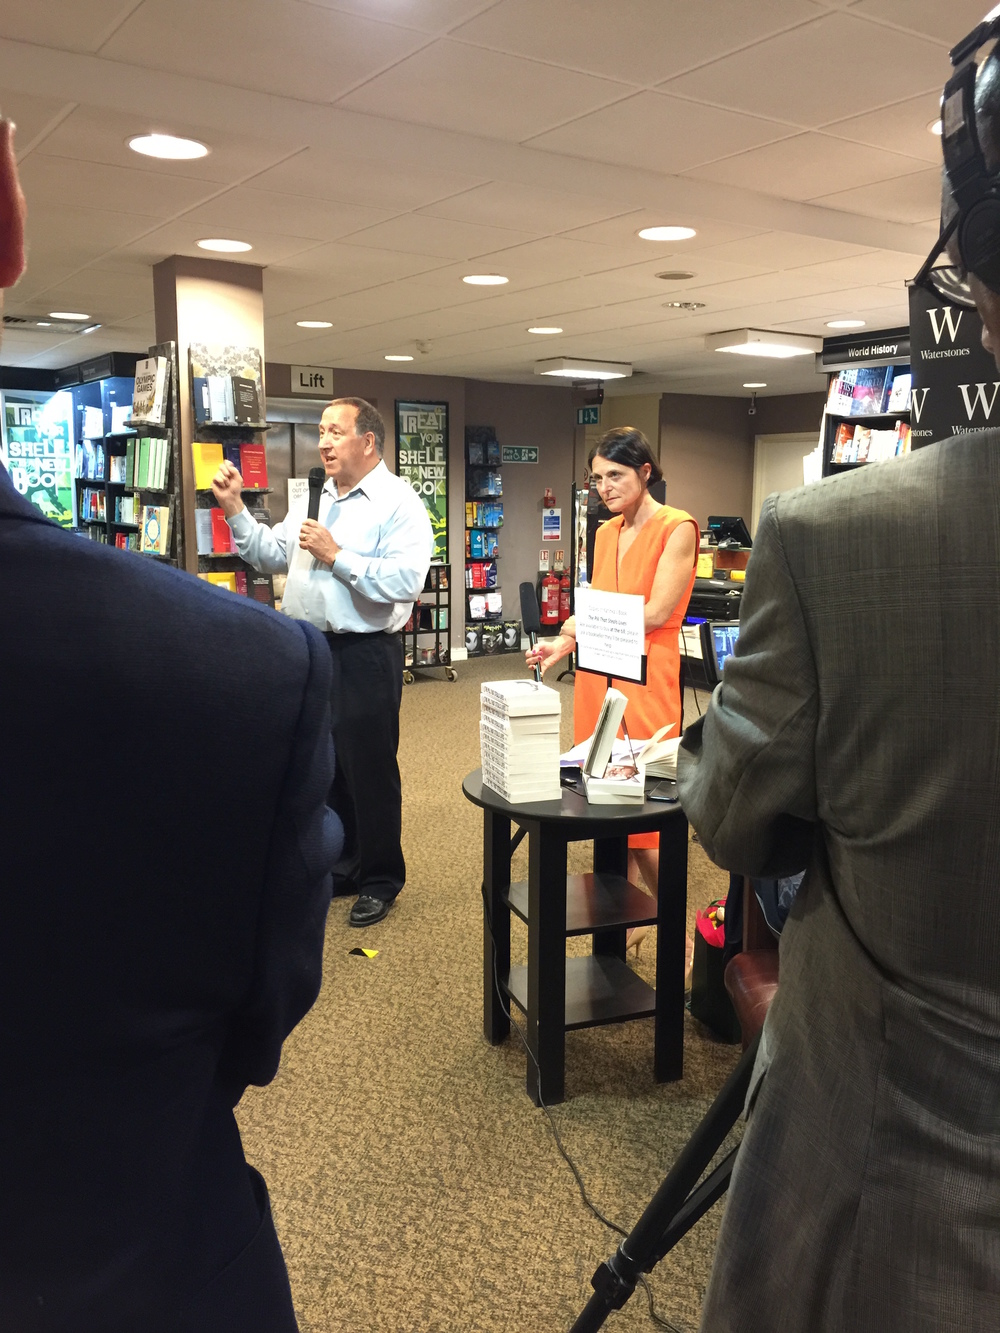 Book launch of The Pill That Steals Lives at Waterstone's, Kensington High Street.   David Carmichael from Toronto has flown in especially to talk about the tragic death  of his son